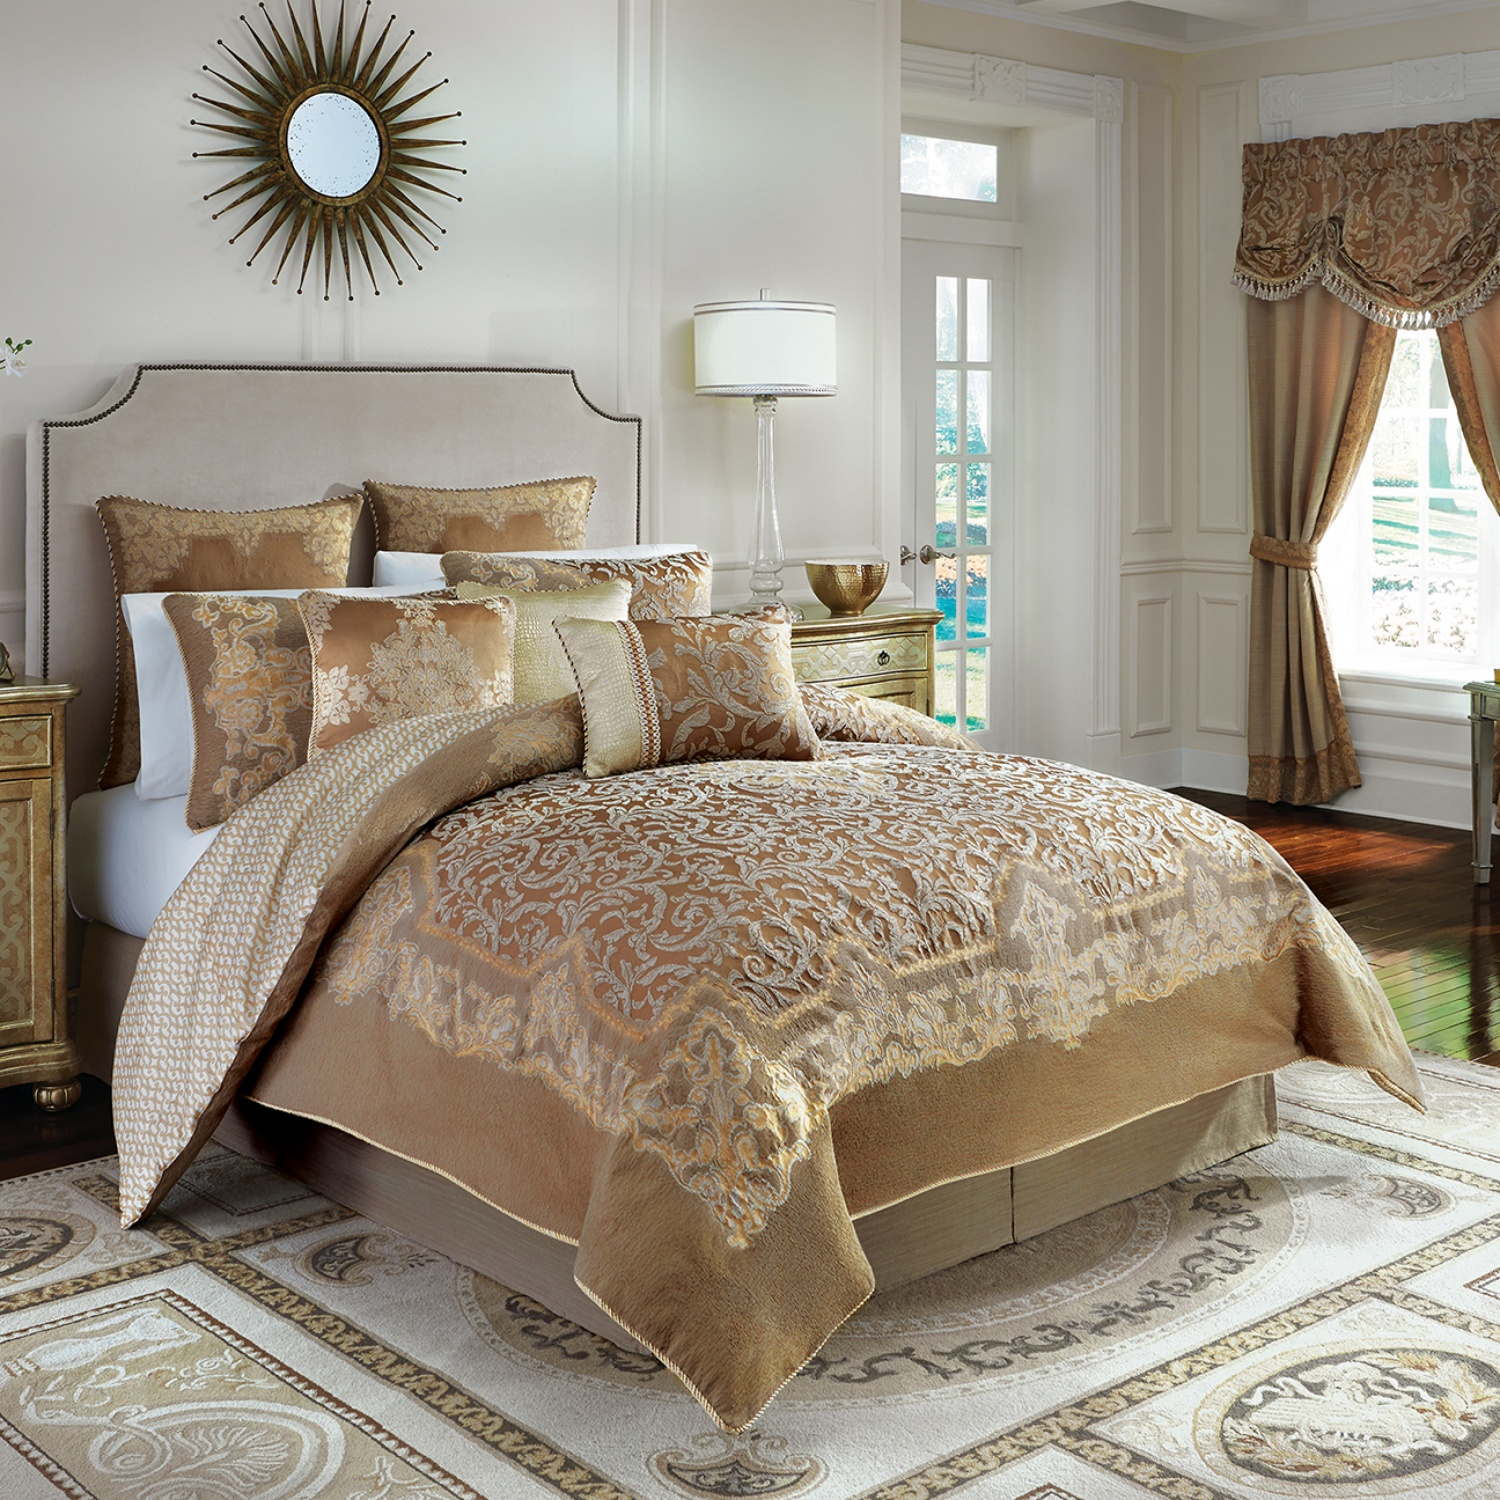 Exciting california king bedding for bedroom design with california king bed frame